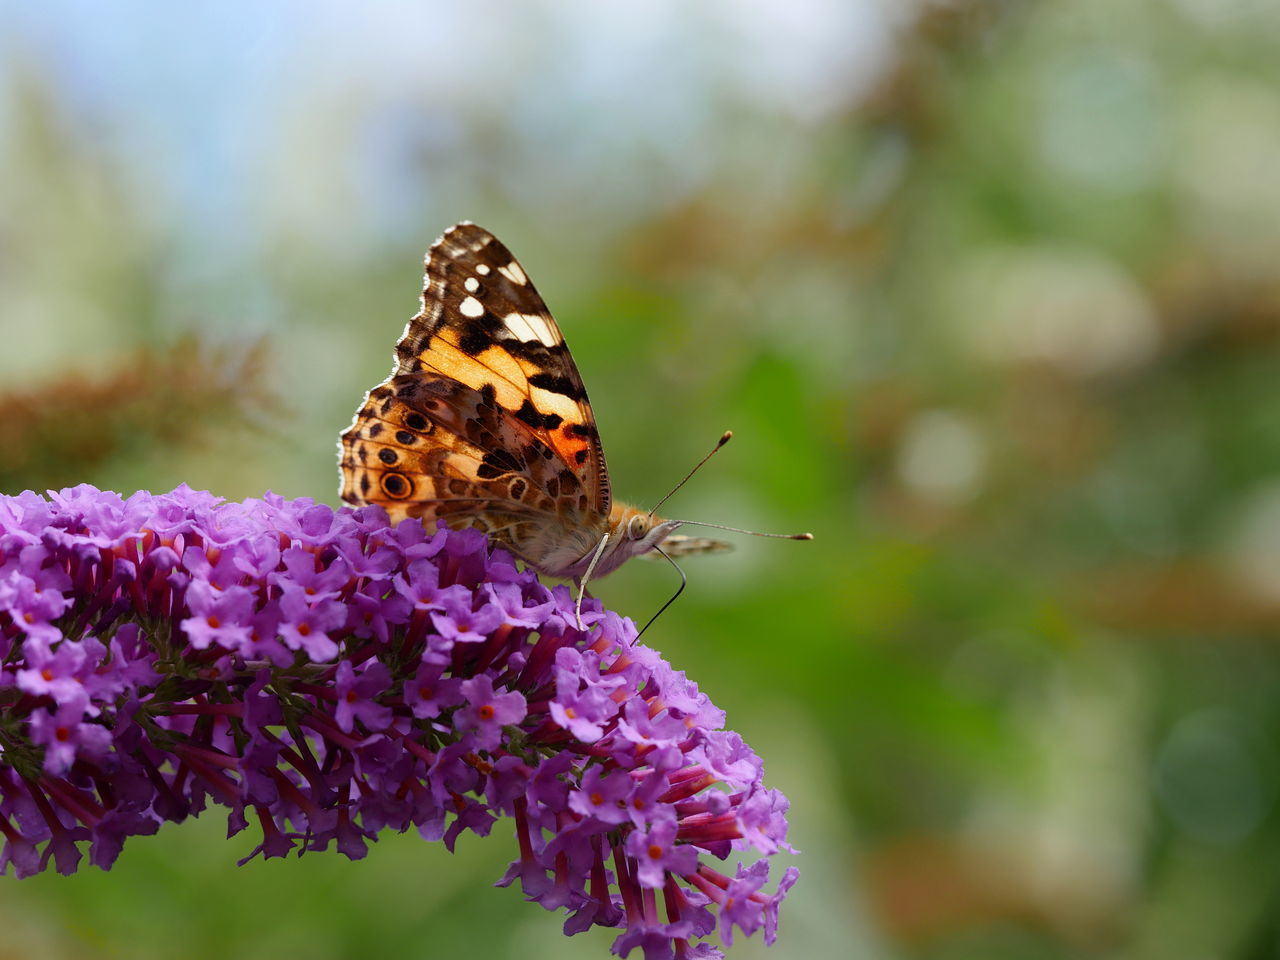 Distelfalter Painted Lady Butterfly Animals Beautiful Nature Focus On Foreground Fragility In Bloom Insect Macro Nature No People Outdoors Pollination Symbiotic Relationship Bokeh Close Up Close-up Animal Themes Animal Antenna Selective Focus From My Point Of View